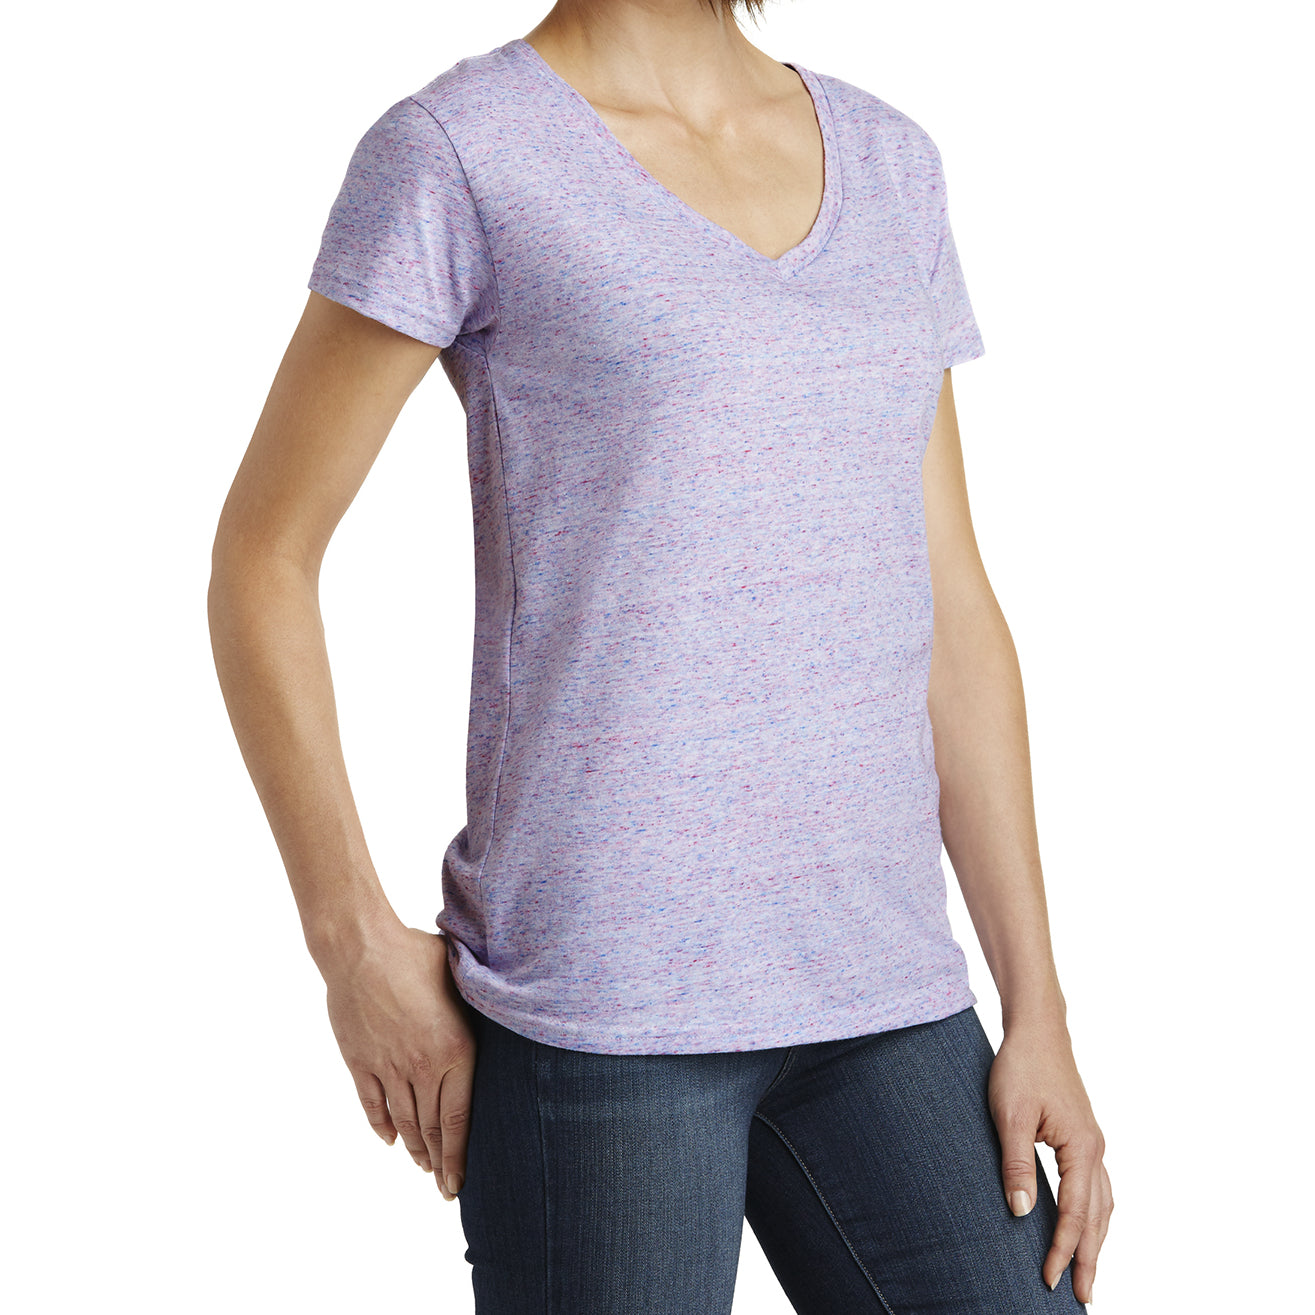 Womens Cosmic Relaxed V-Neck Tee - White/Pink Cosmic - Side